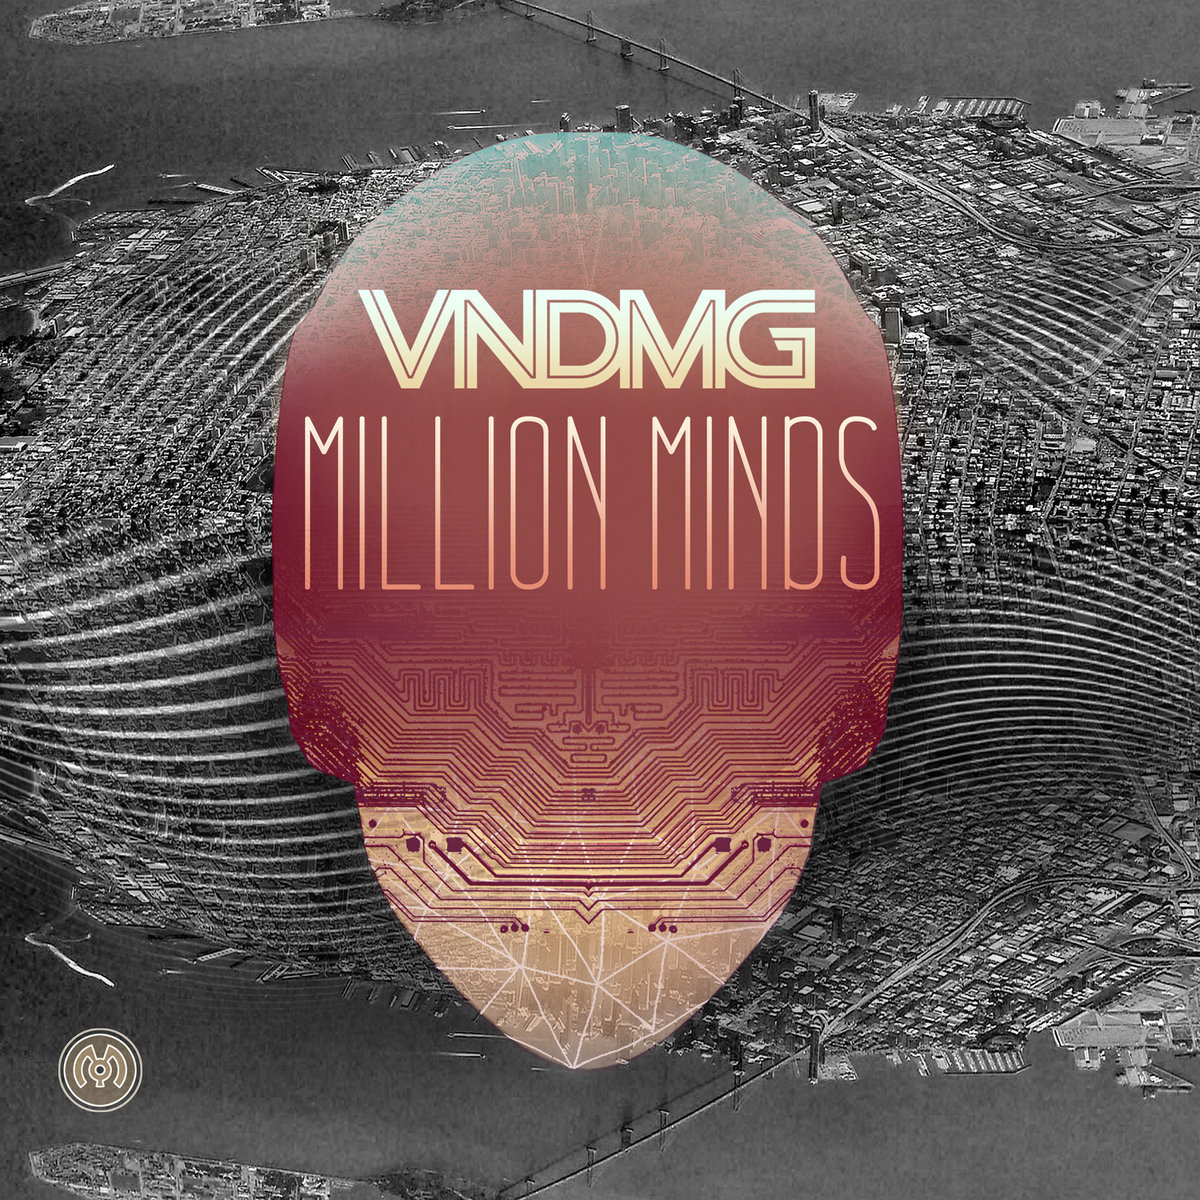 VNDMG - Million Minds @ 'Million Minds' album (electronic, dubstep)